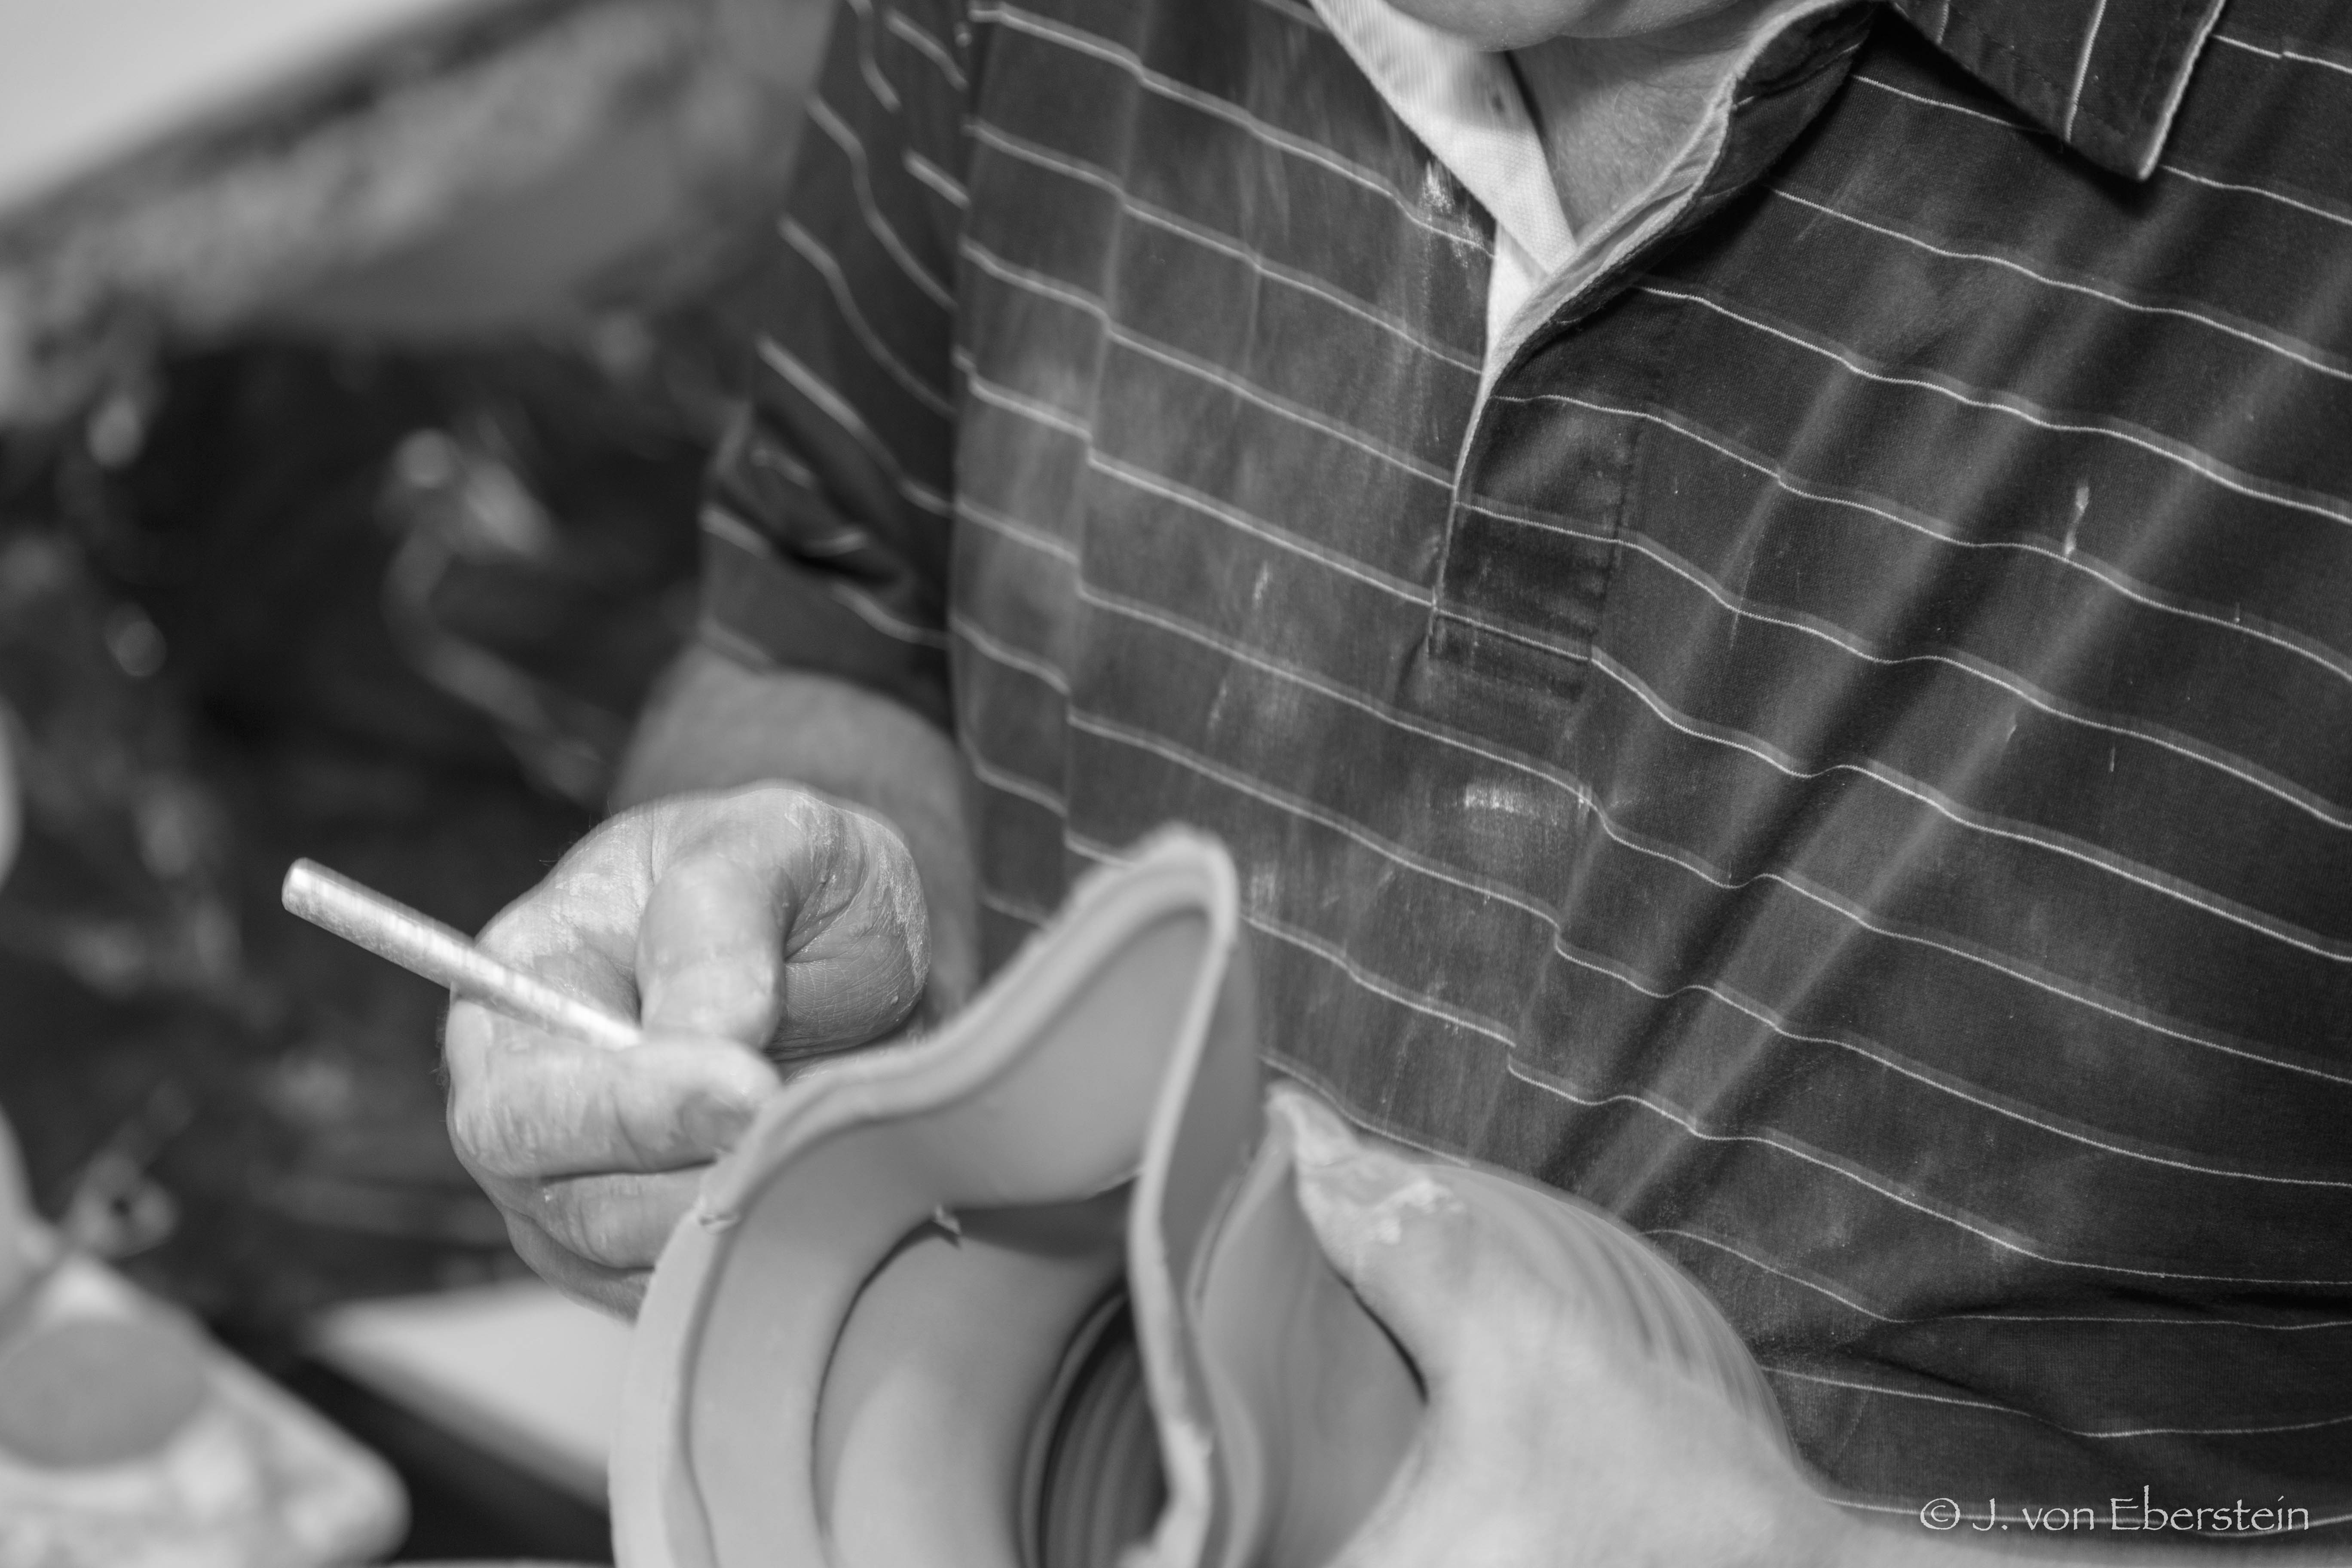 Clay in Motion, Milton-Freewater, OR